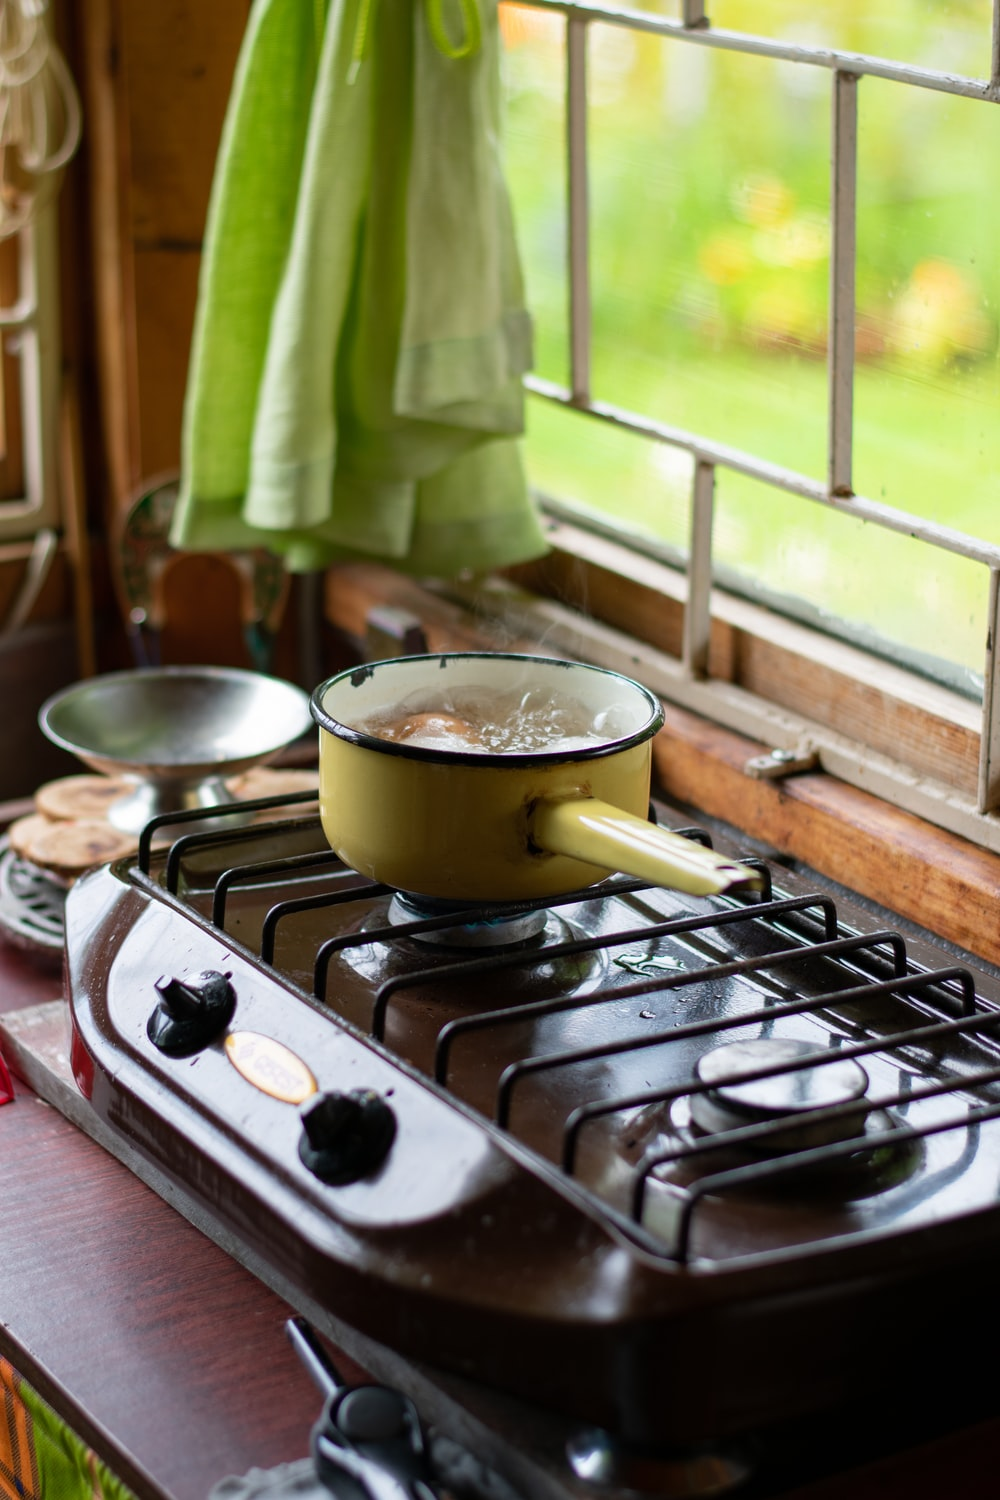 stainless steel cooking pot on gas stove